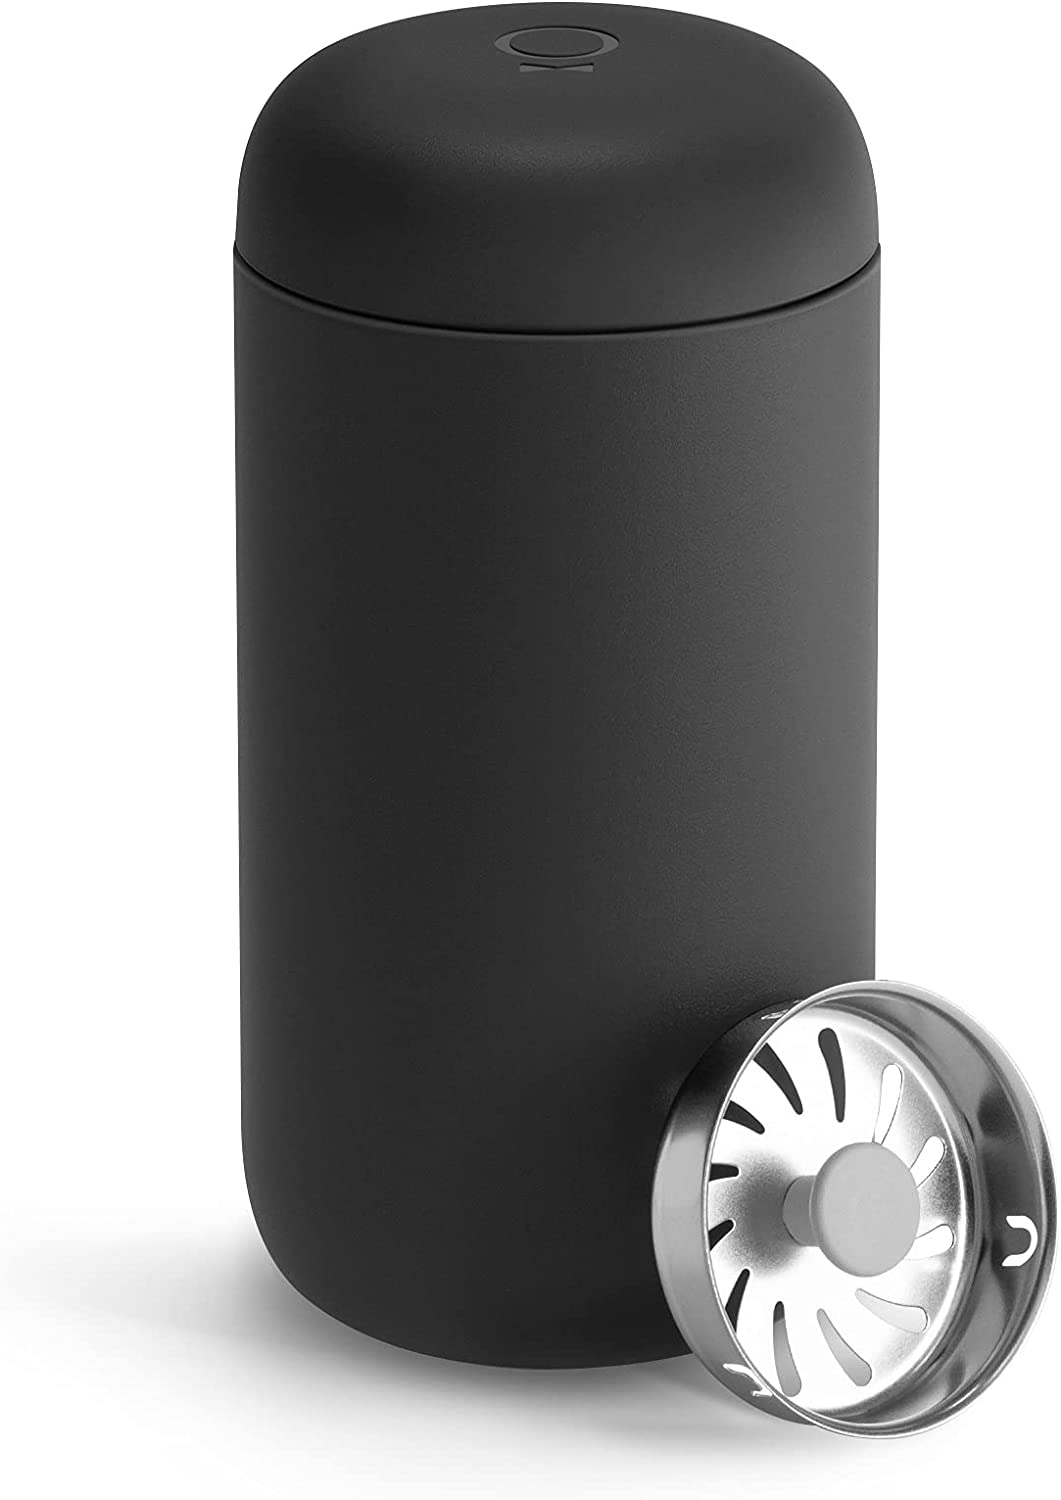 OFFicial Fellow Carter Move Travel Mug Vacuum-Insulated Same day shipping - Stainless Steel